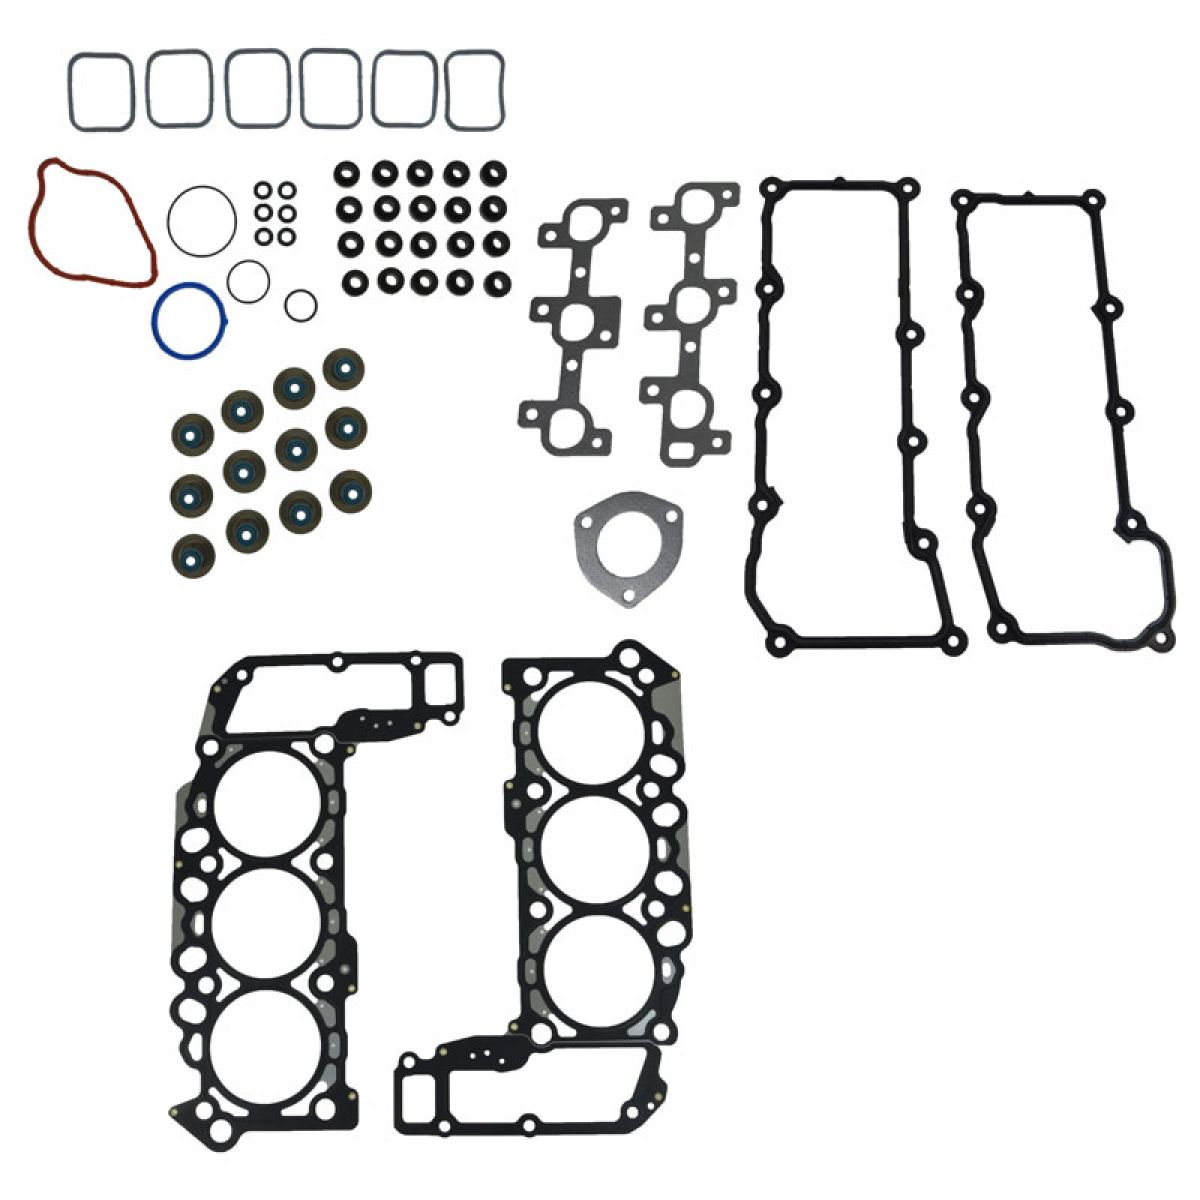 Engine Head Intake Exhaust Manifold Gasket Kit Set For